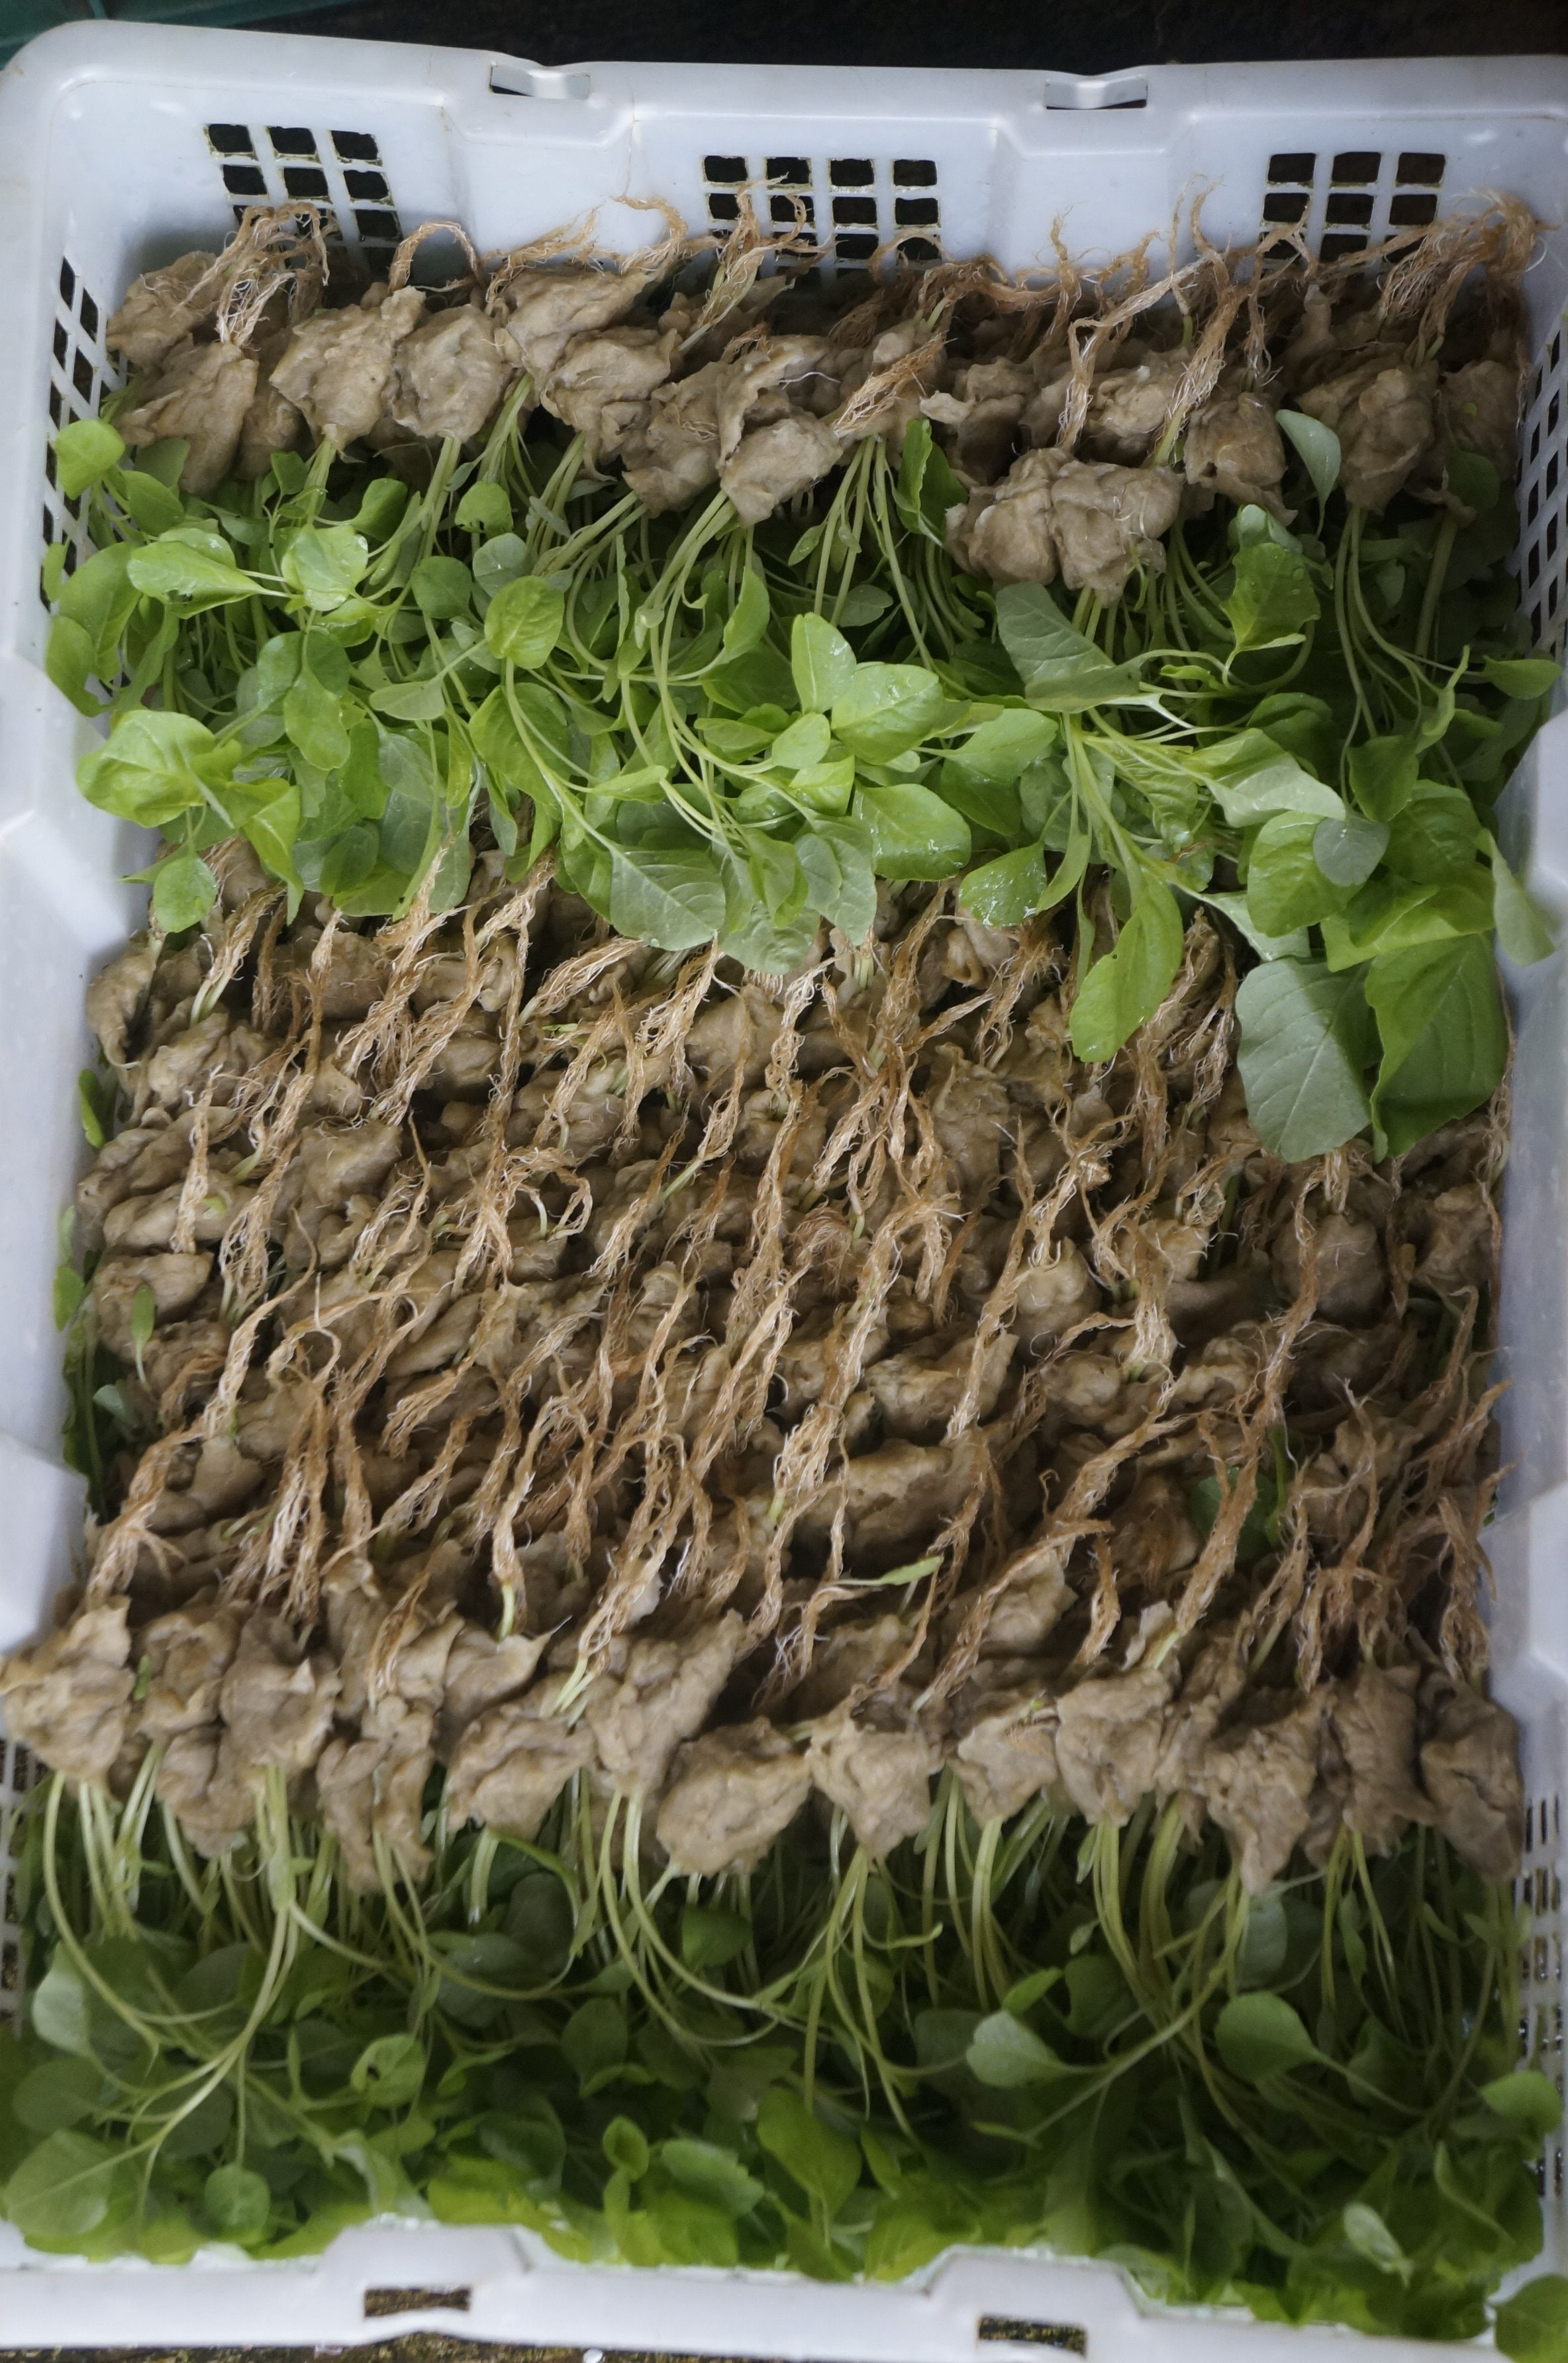 Spinach seedling with rockwool for hydroponic farming system spinach seedling with rockwool for hydroponic farming system solutioingenieria Image collections